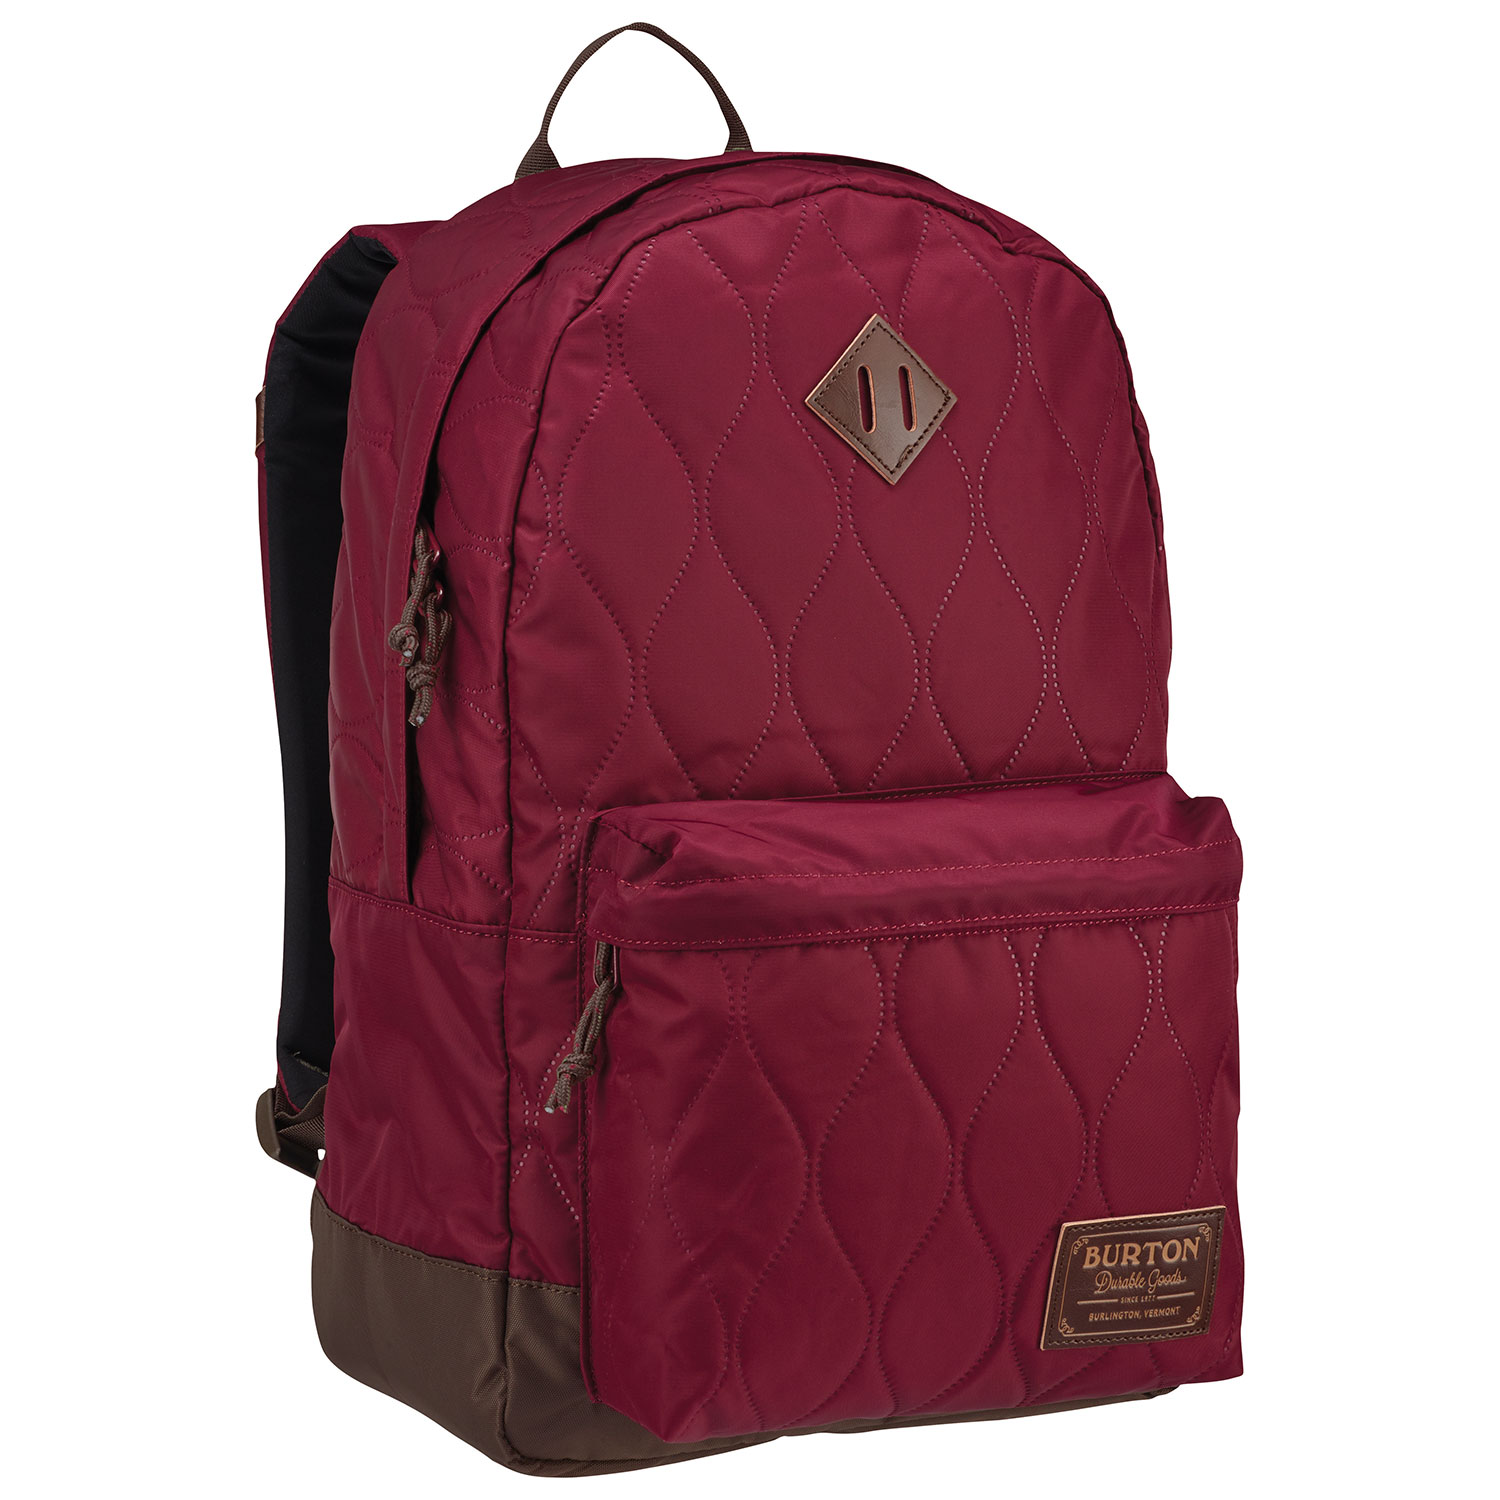 ace93ced60ce This burgundy 20L backpack has a quilted exterior